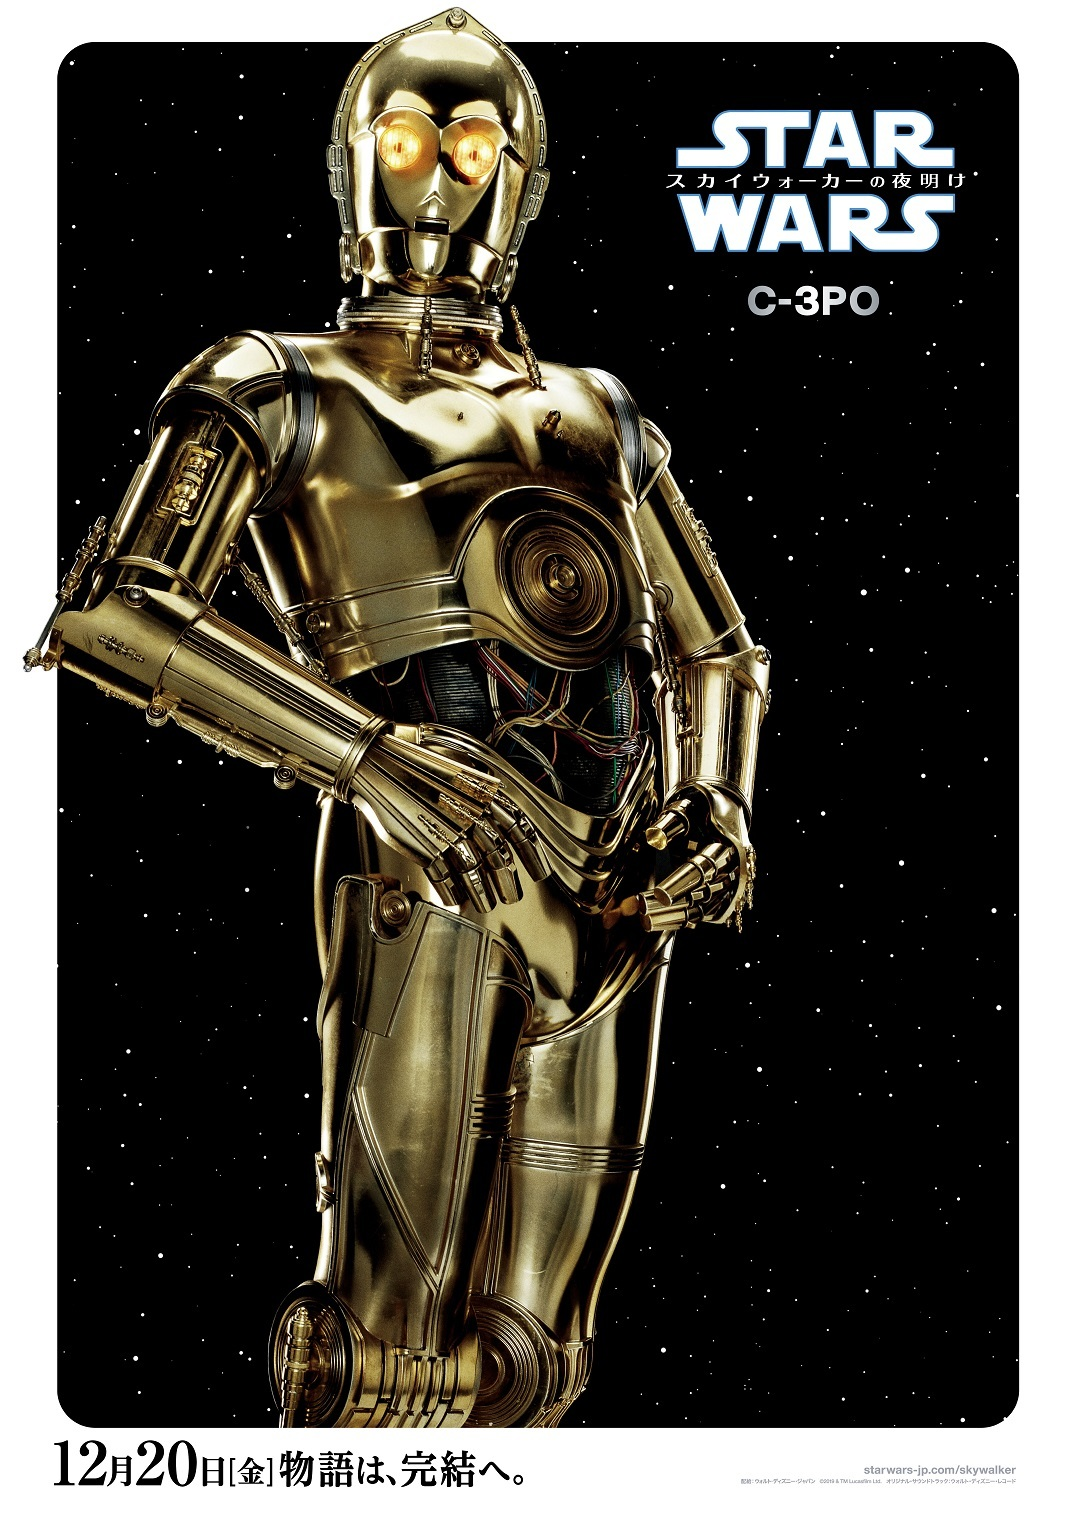 C-3PO (C)2019 Lucasfilm Ltd. All Rights Reserved.